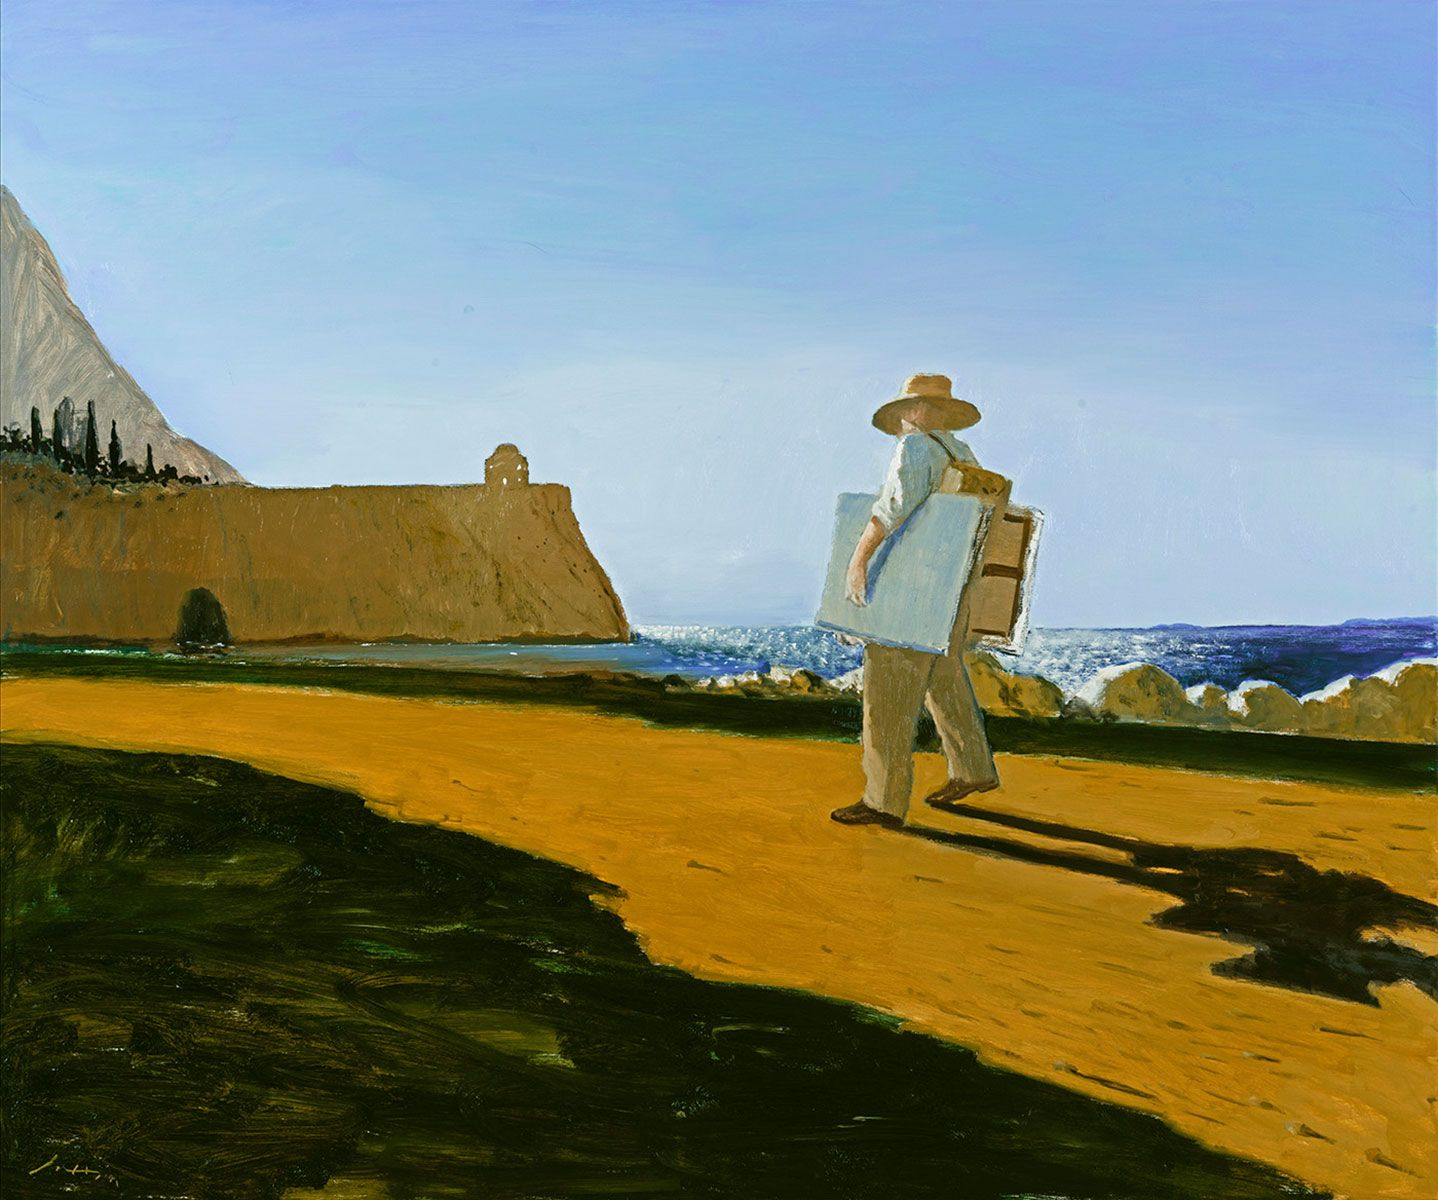 Larraz-The-Painter-on-the-road-to-Punta-Agravox,2020,Oil-on-Canvas,60x72in_Hi_res